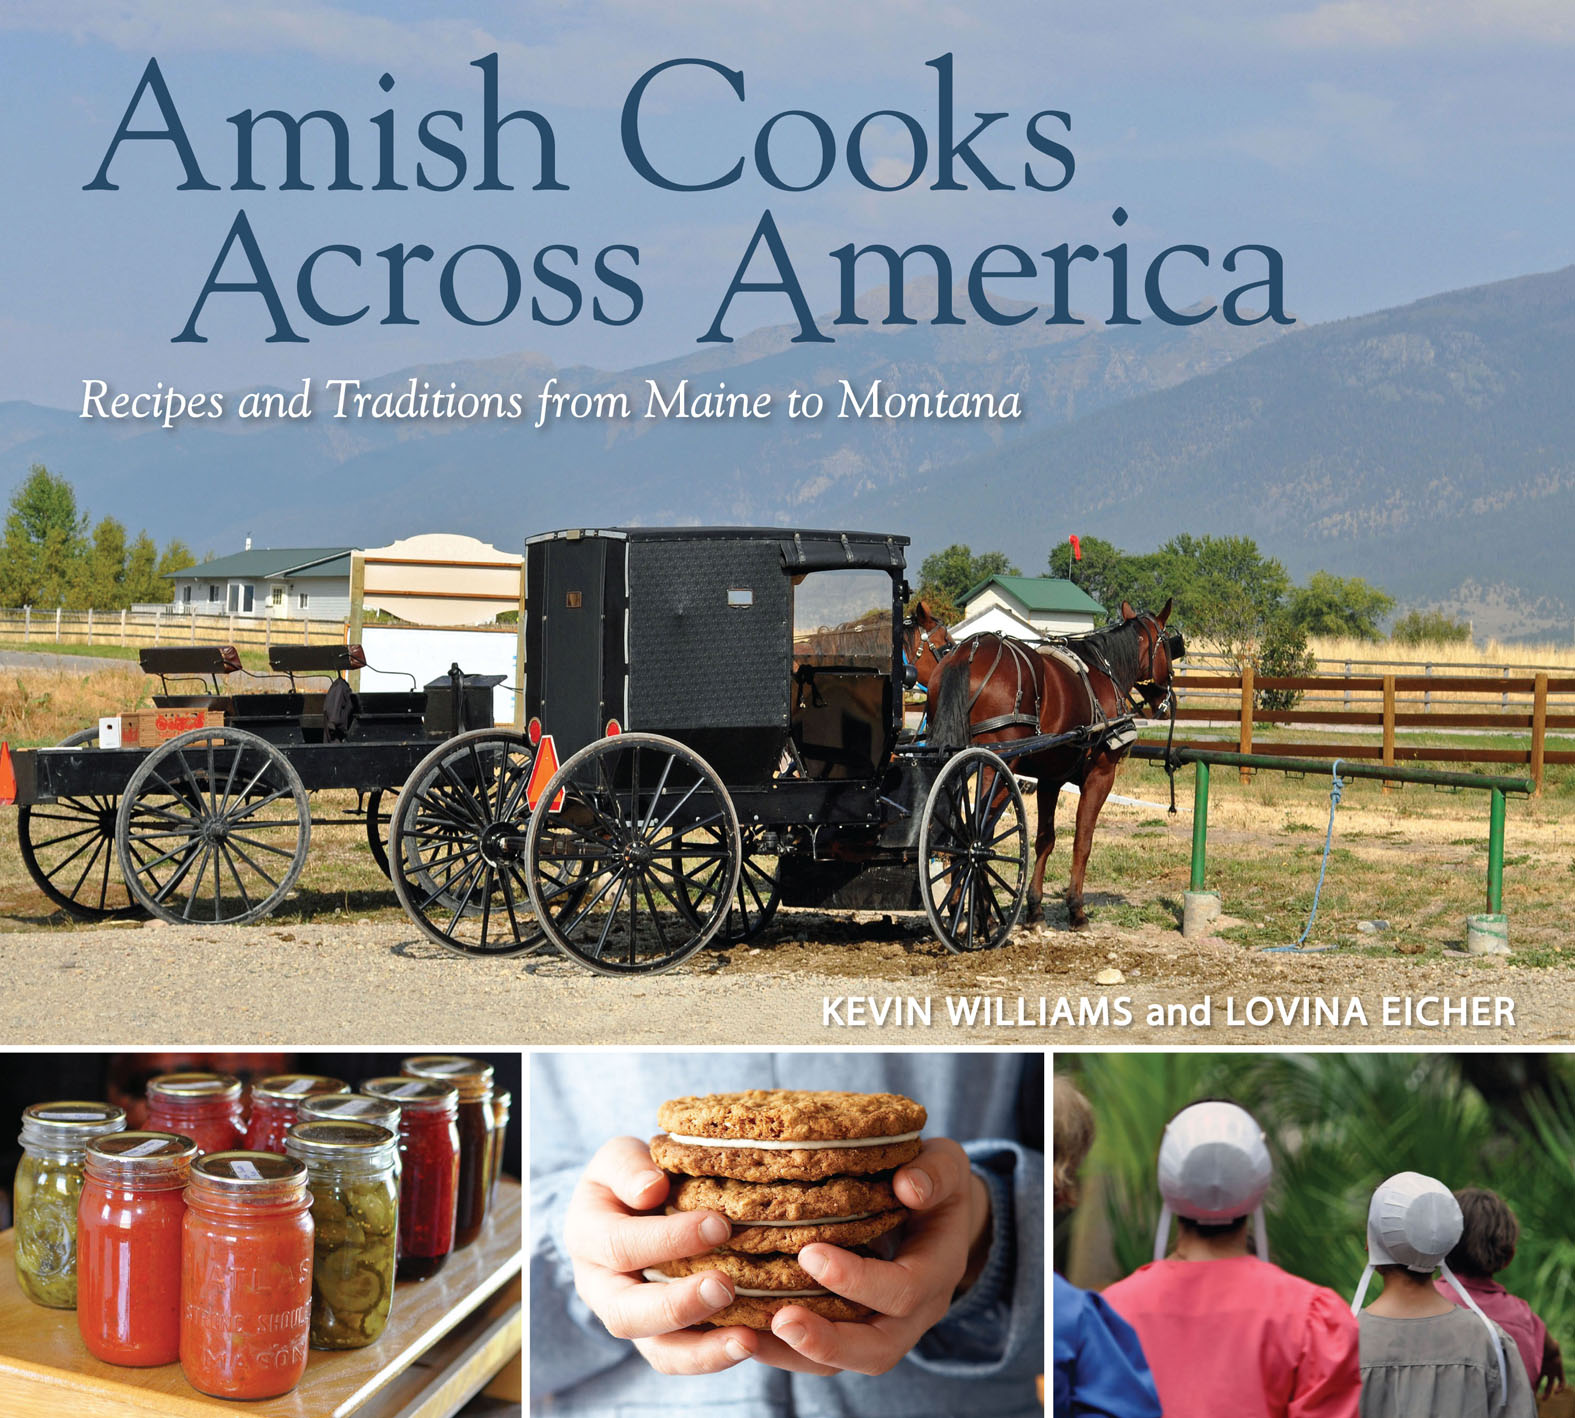 Amish Cooks Across America Recipes and Traditions from Maine to Montana